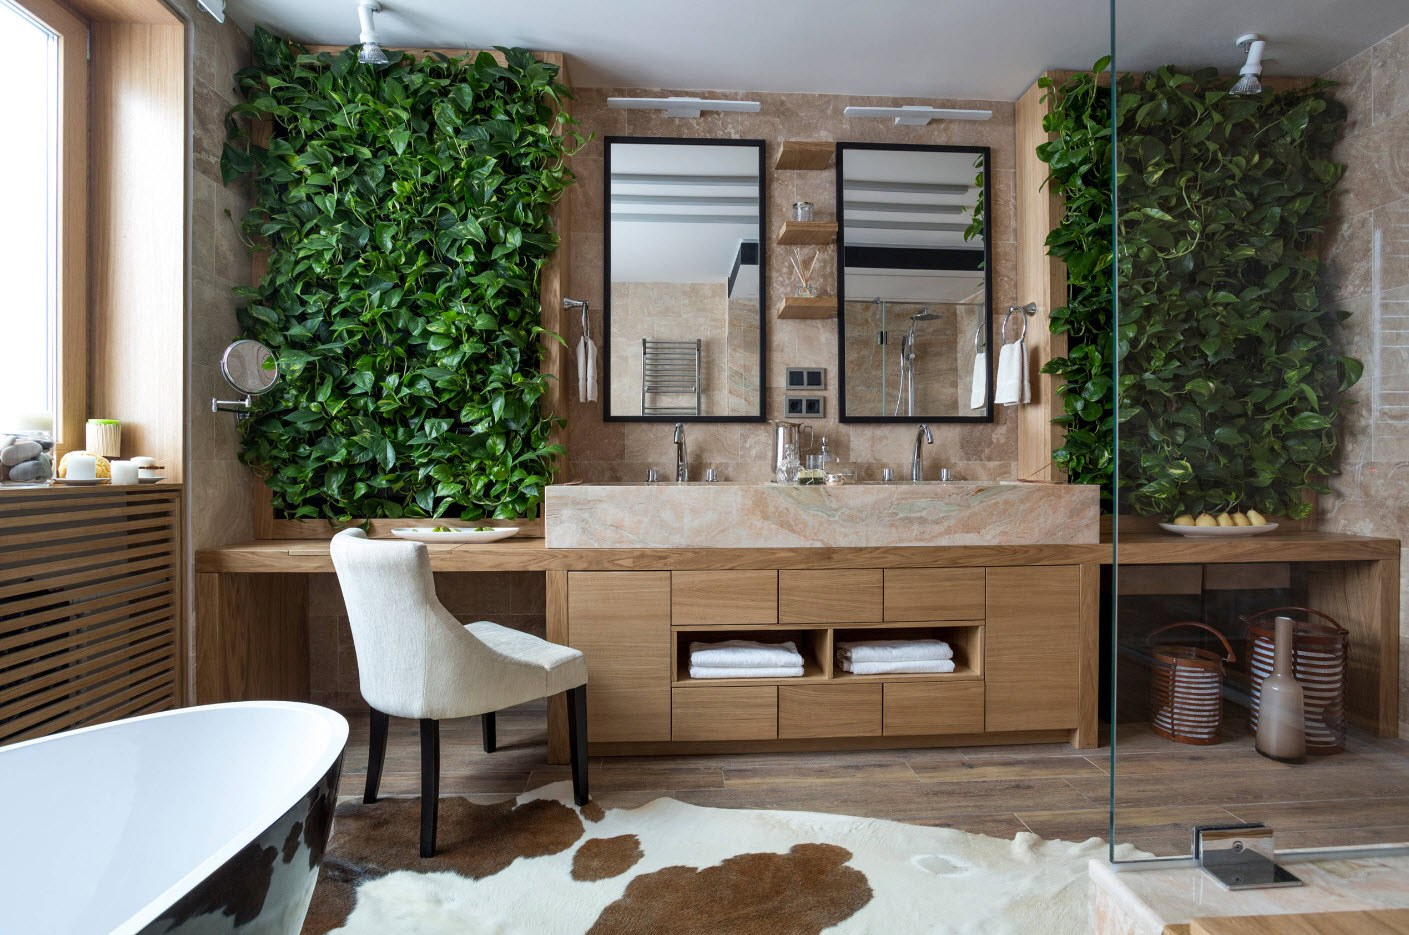 Absoiutely gorgeous design of the eco bathroom with greenery zones at the wall and cow pelt on the floor